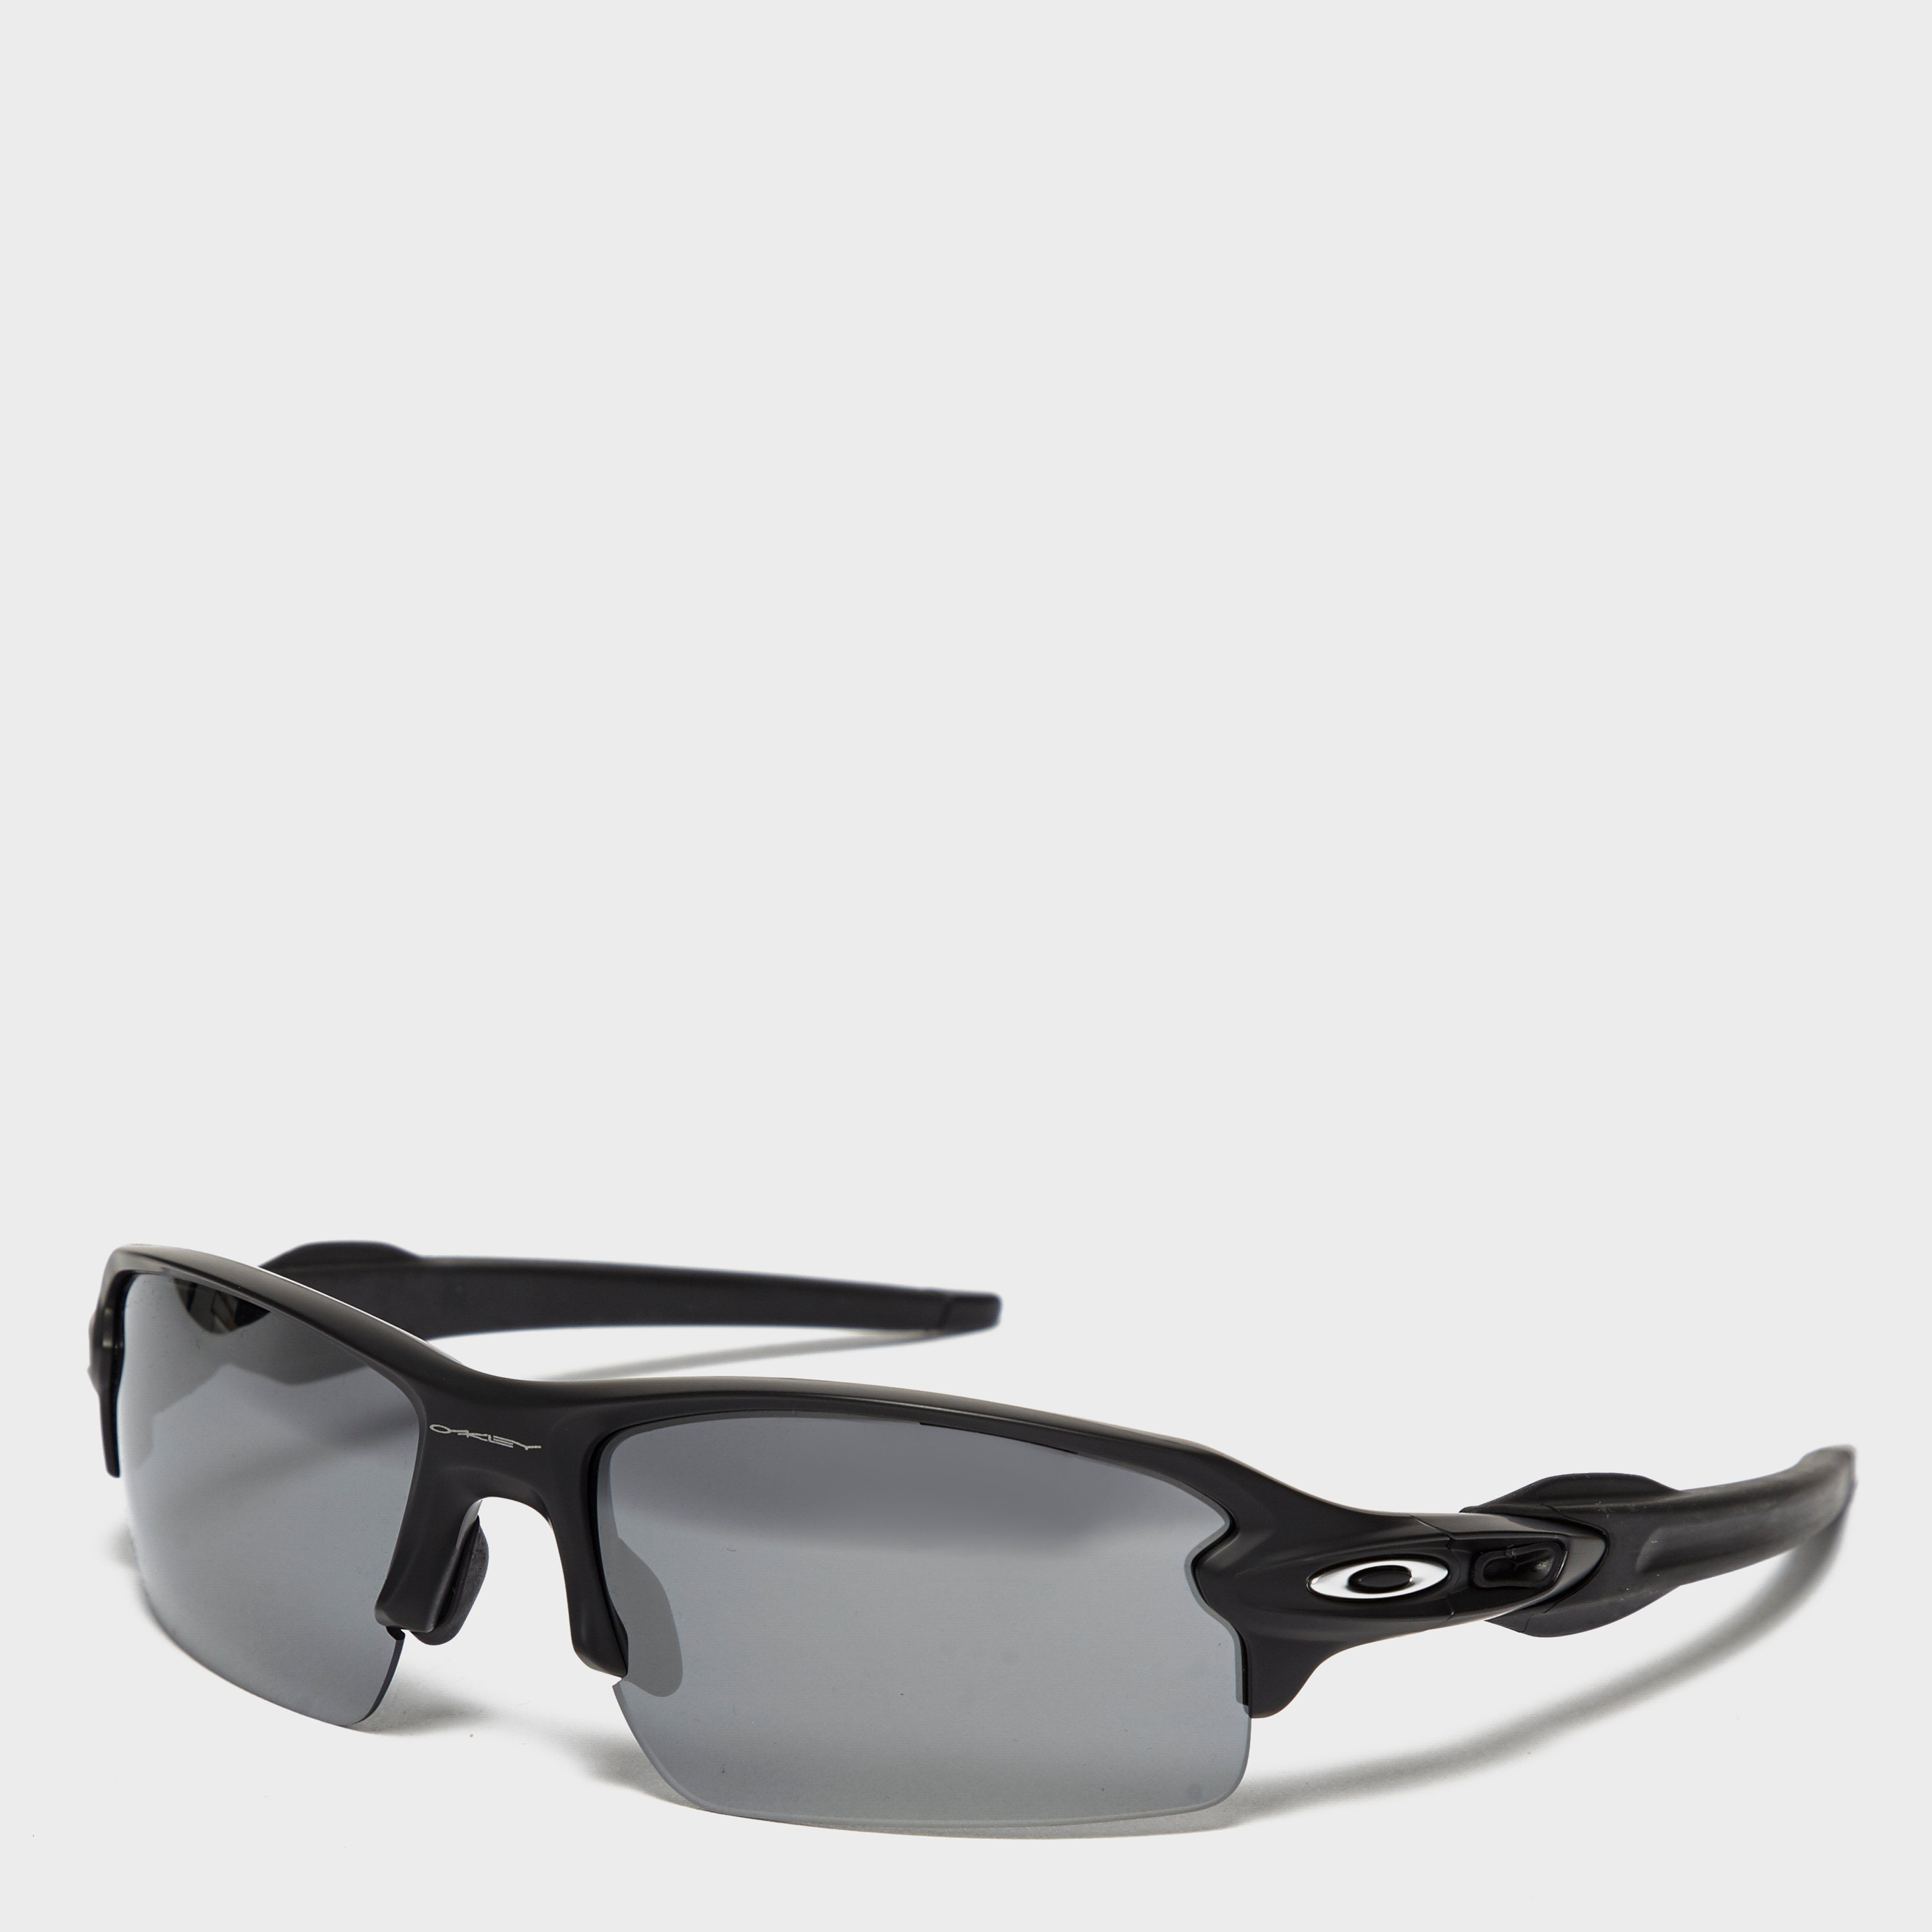 OAKLEY Flak™ 2.0 Black Iridium Sunglasses